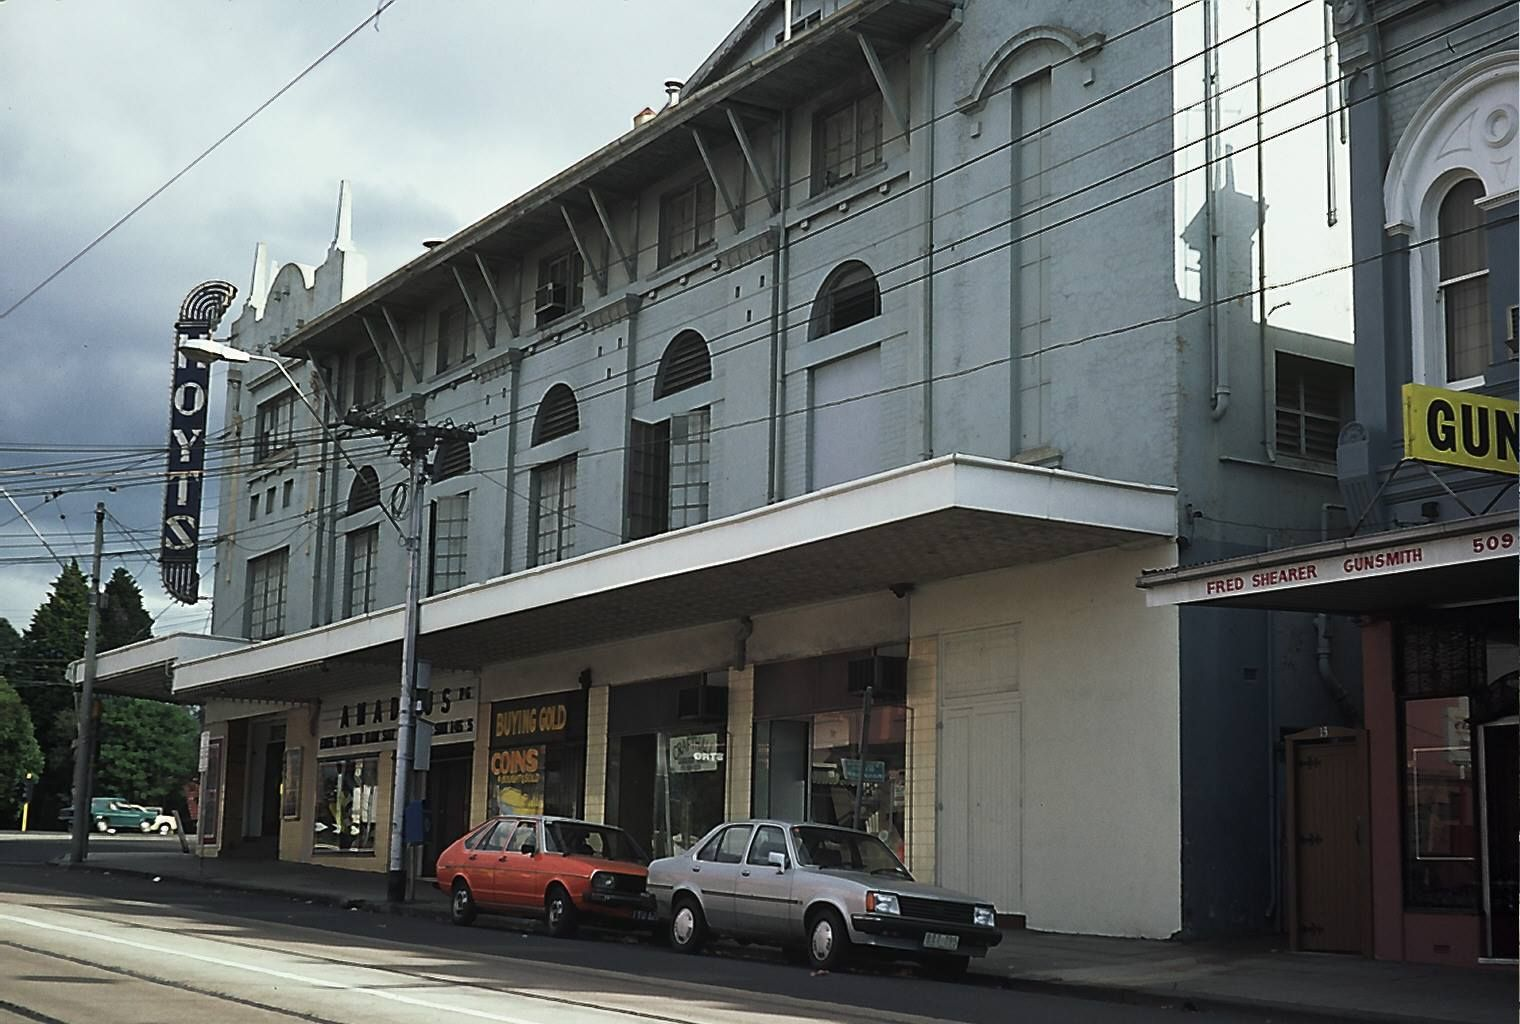 Glenferrie Road View Of Hoyts Malvern In 1984 Amadeus Was Showing At The Time Of The Photo History Theatre In Australia Pinterest